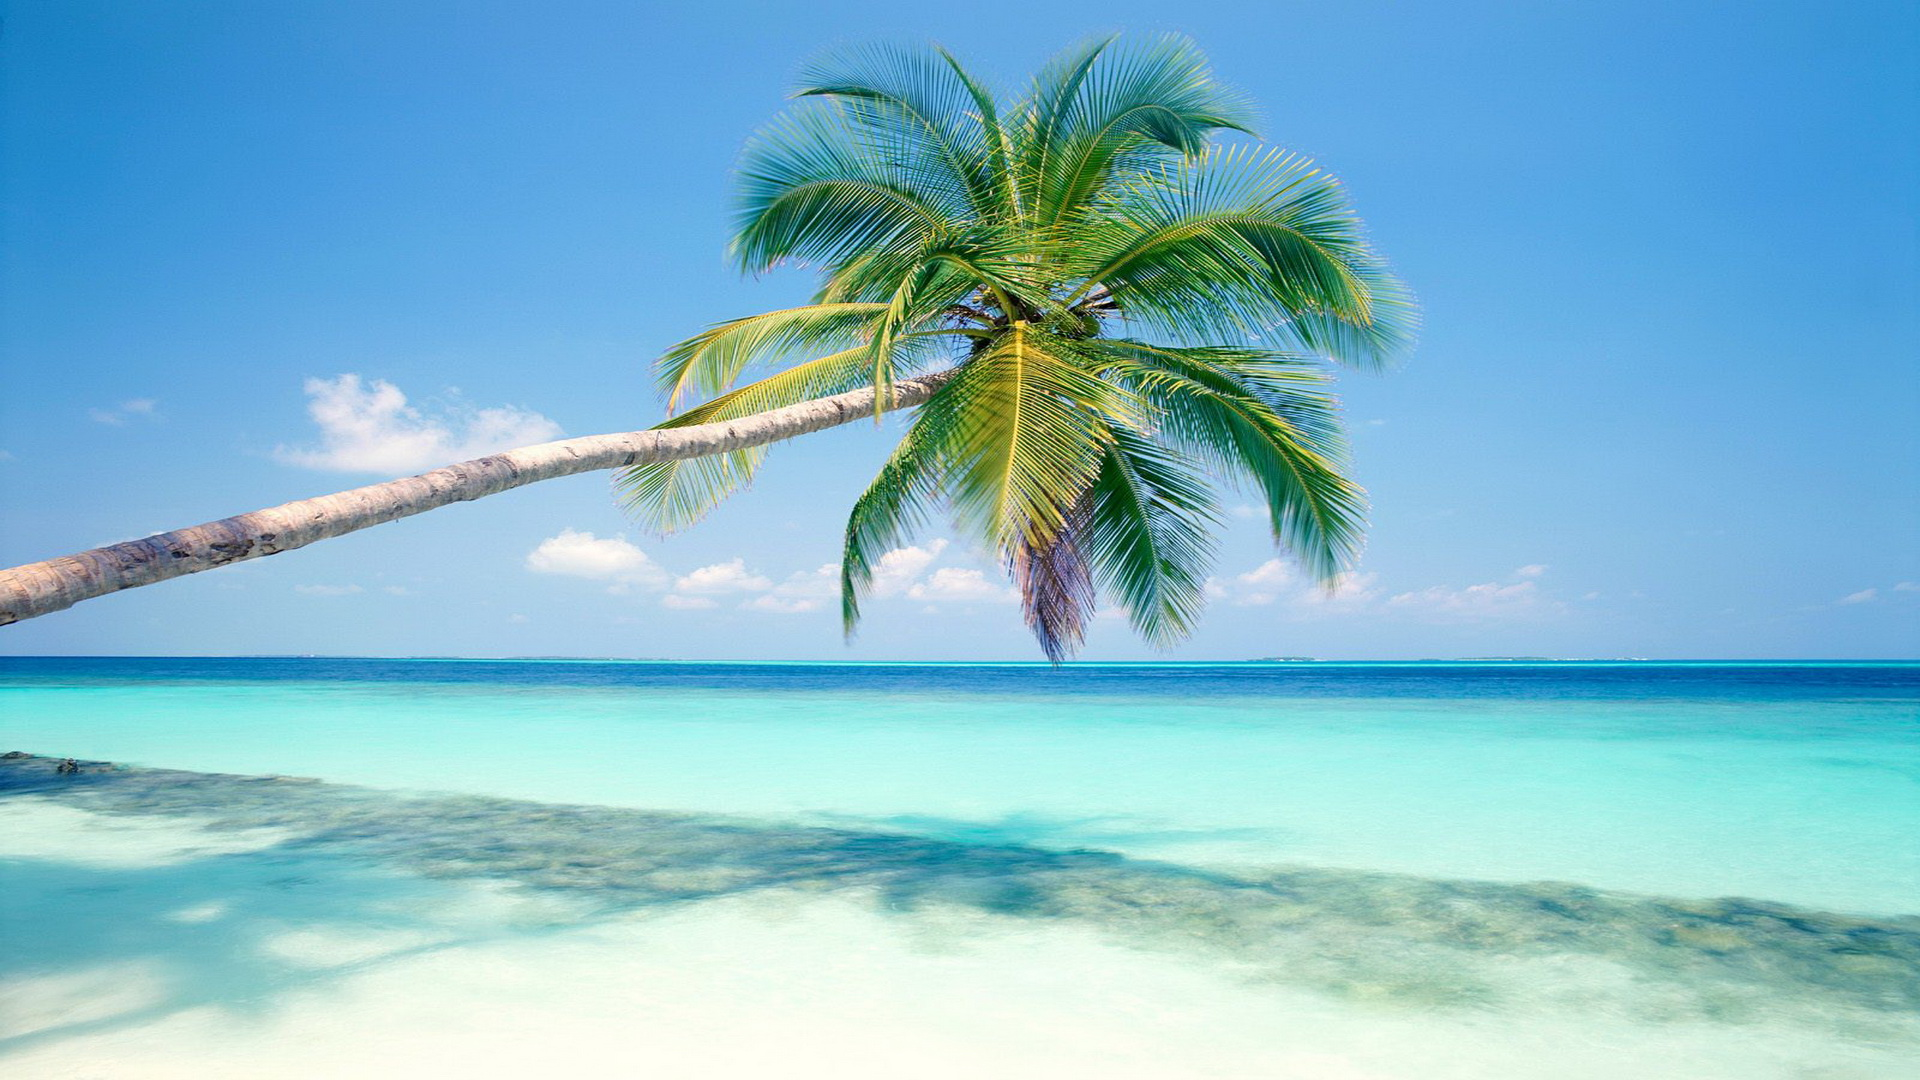 Tropical Island Beach Desktop Background Hd Wallpaper 1920x1080